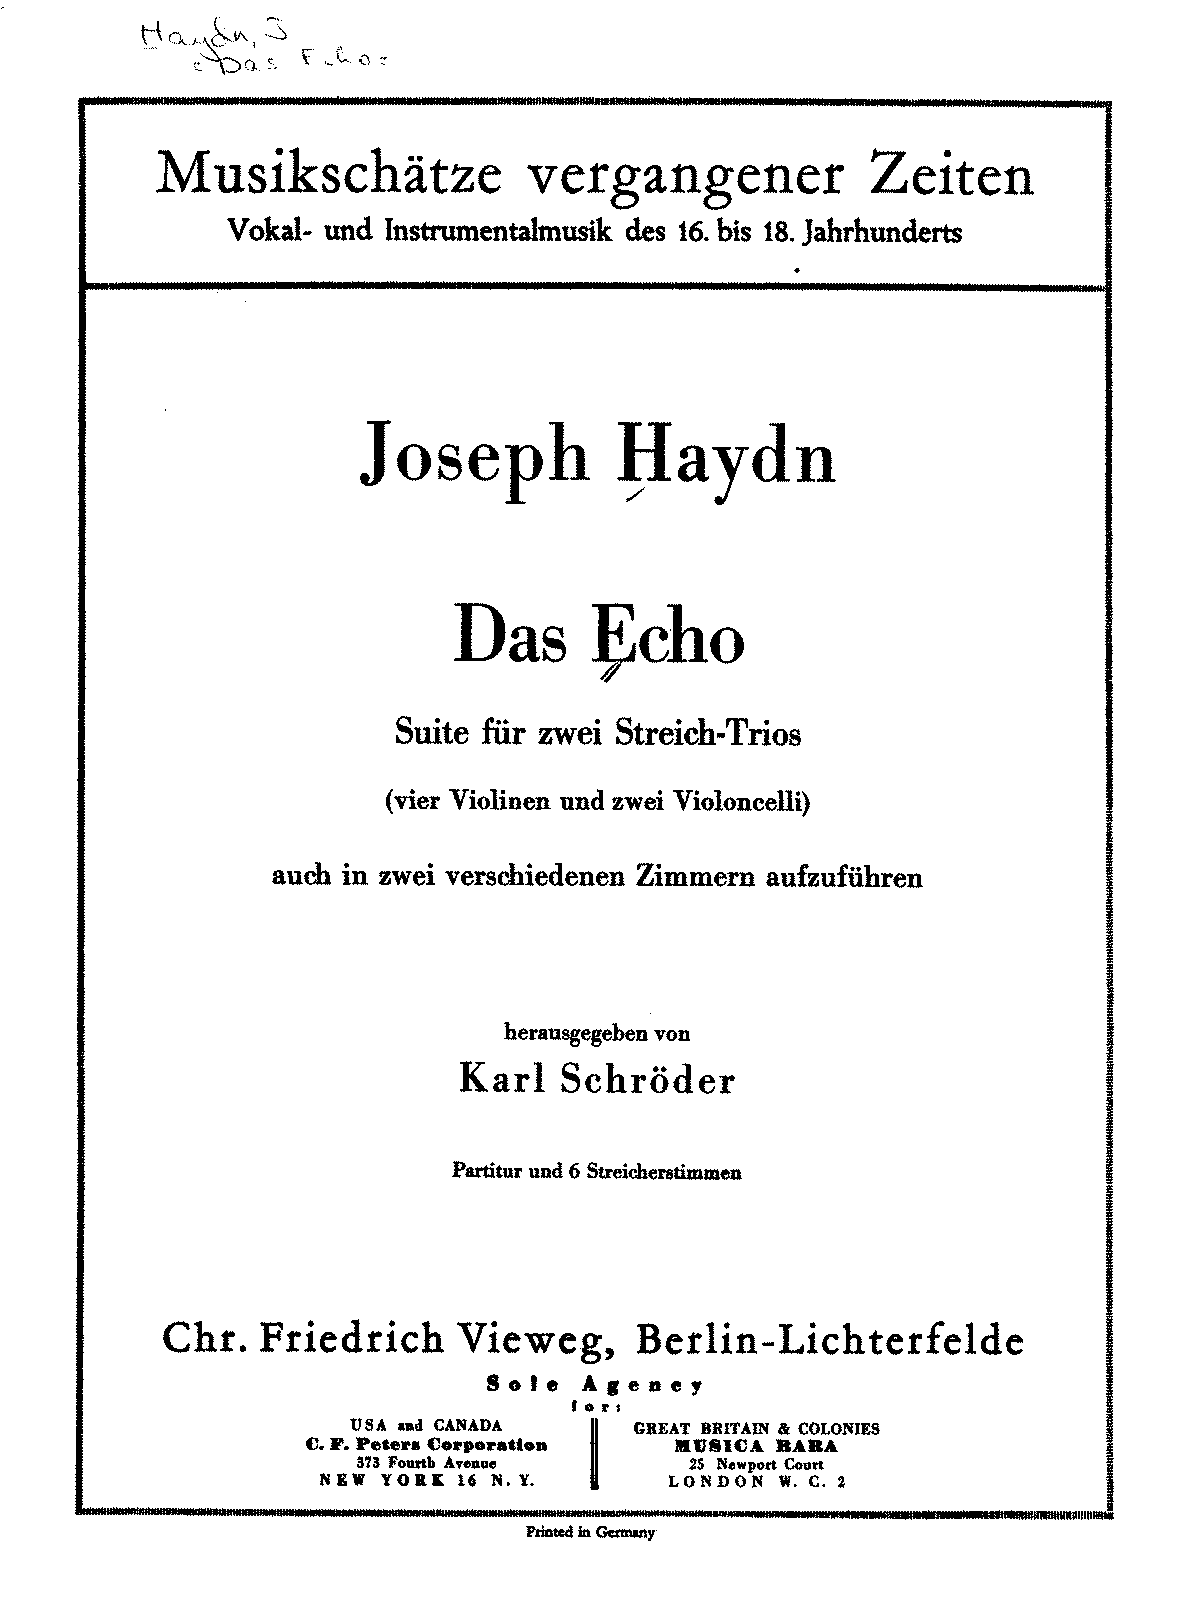 PMLP159858-Haydn - Das Echo Suite for 4 Violins and 2 Cellos (Schroeder) score.pdf